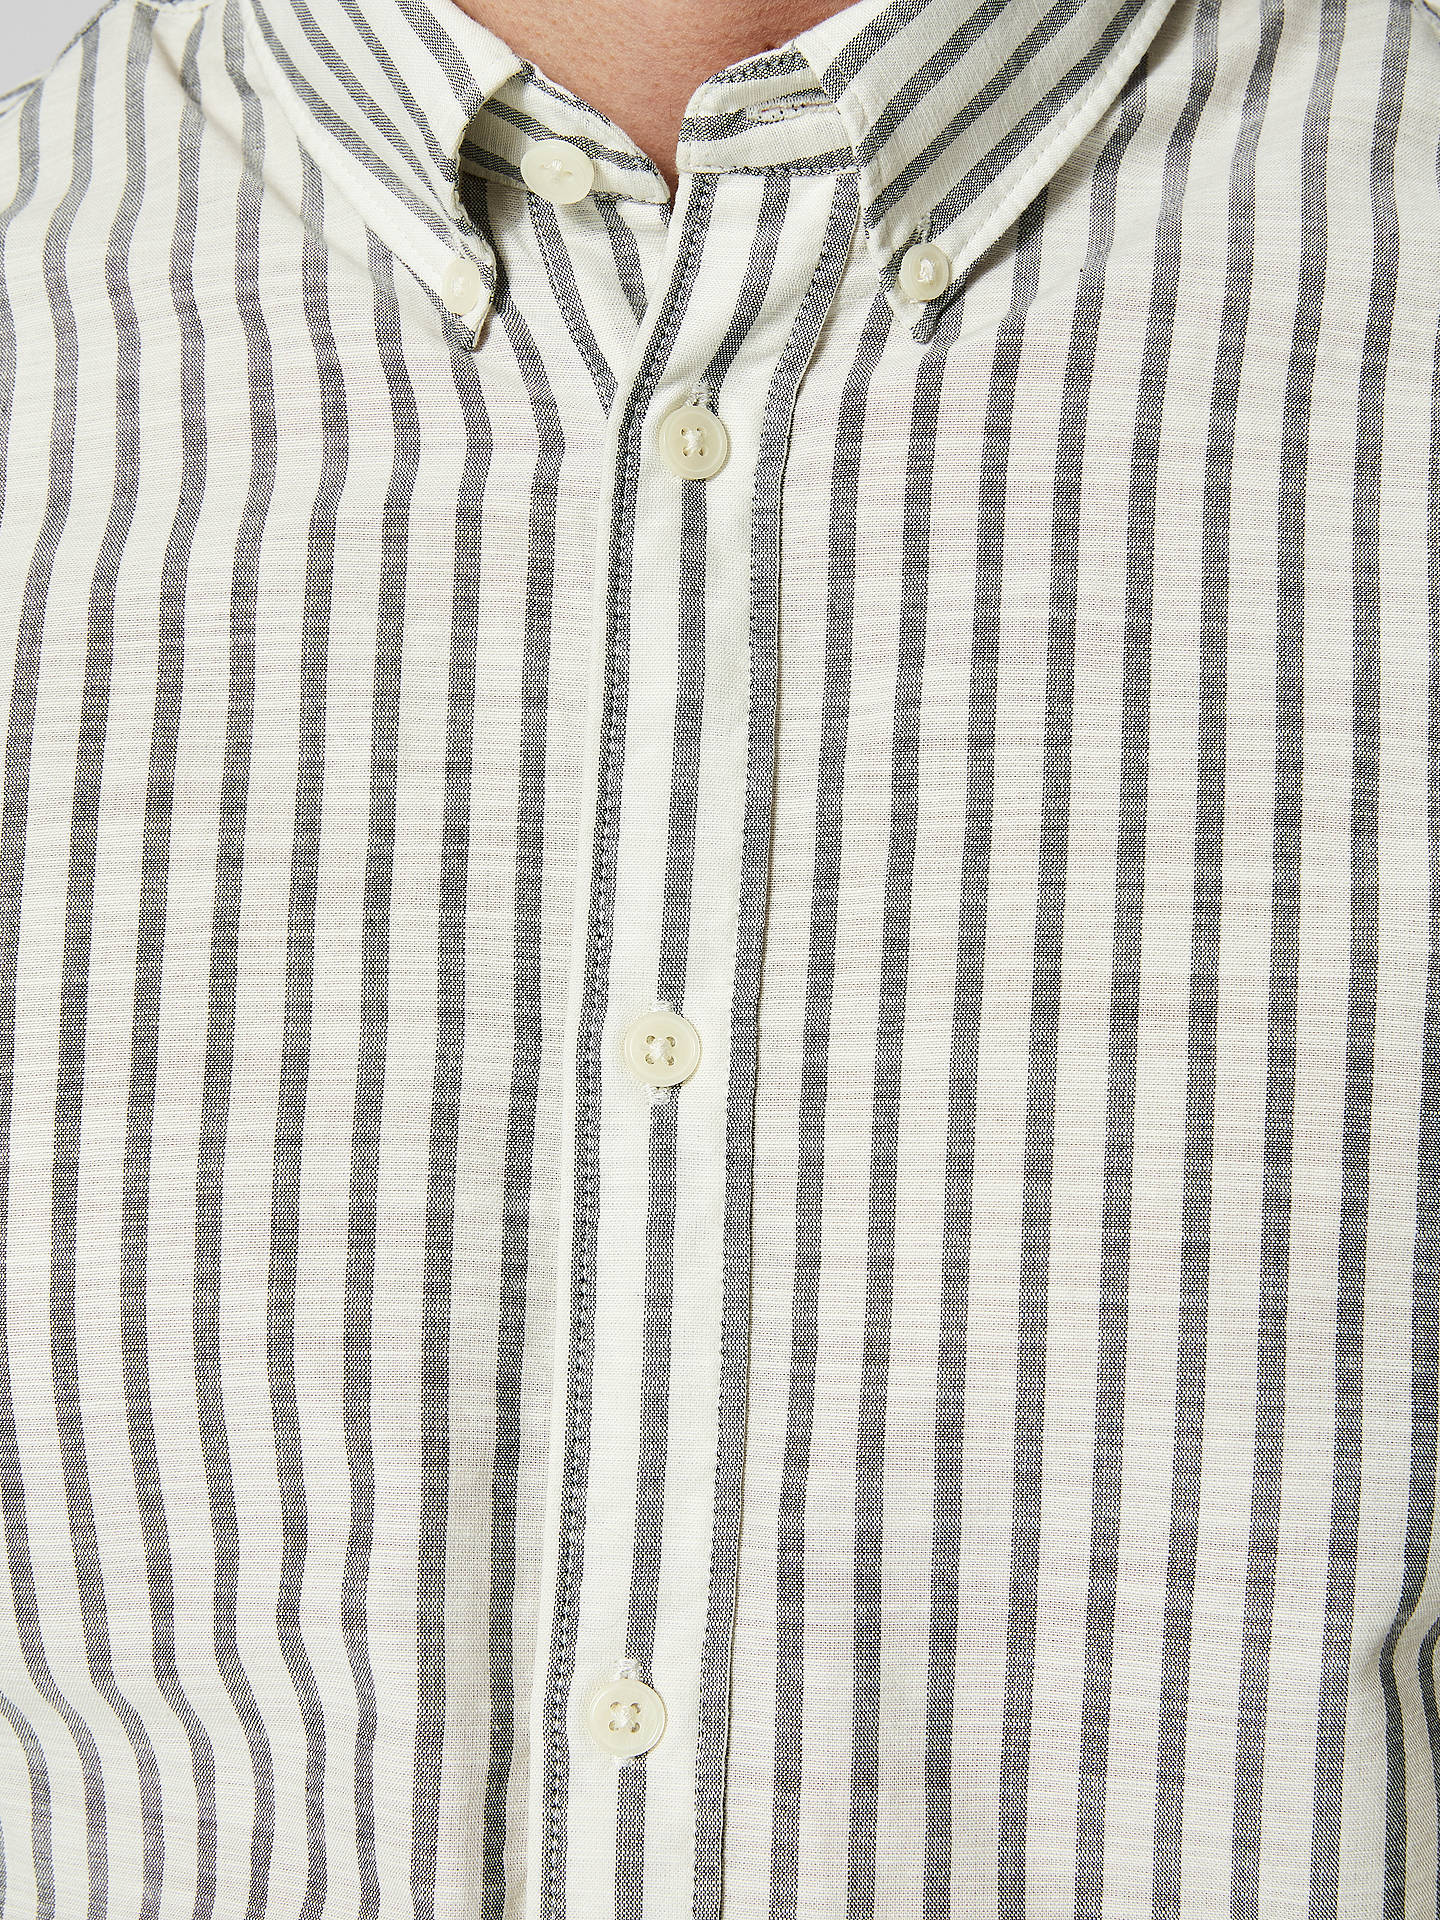 Buy Selected Homme Twowilliam Short Sleeve Stripe Shirt, White/Indigo, S Online at johnlewis.com